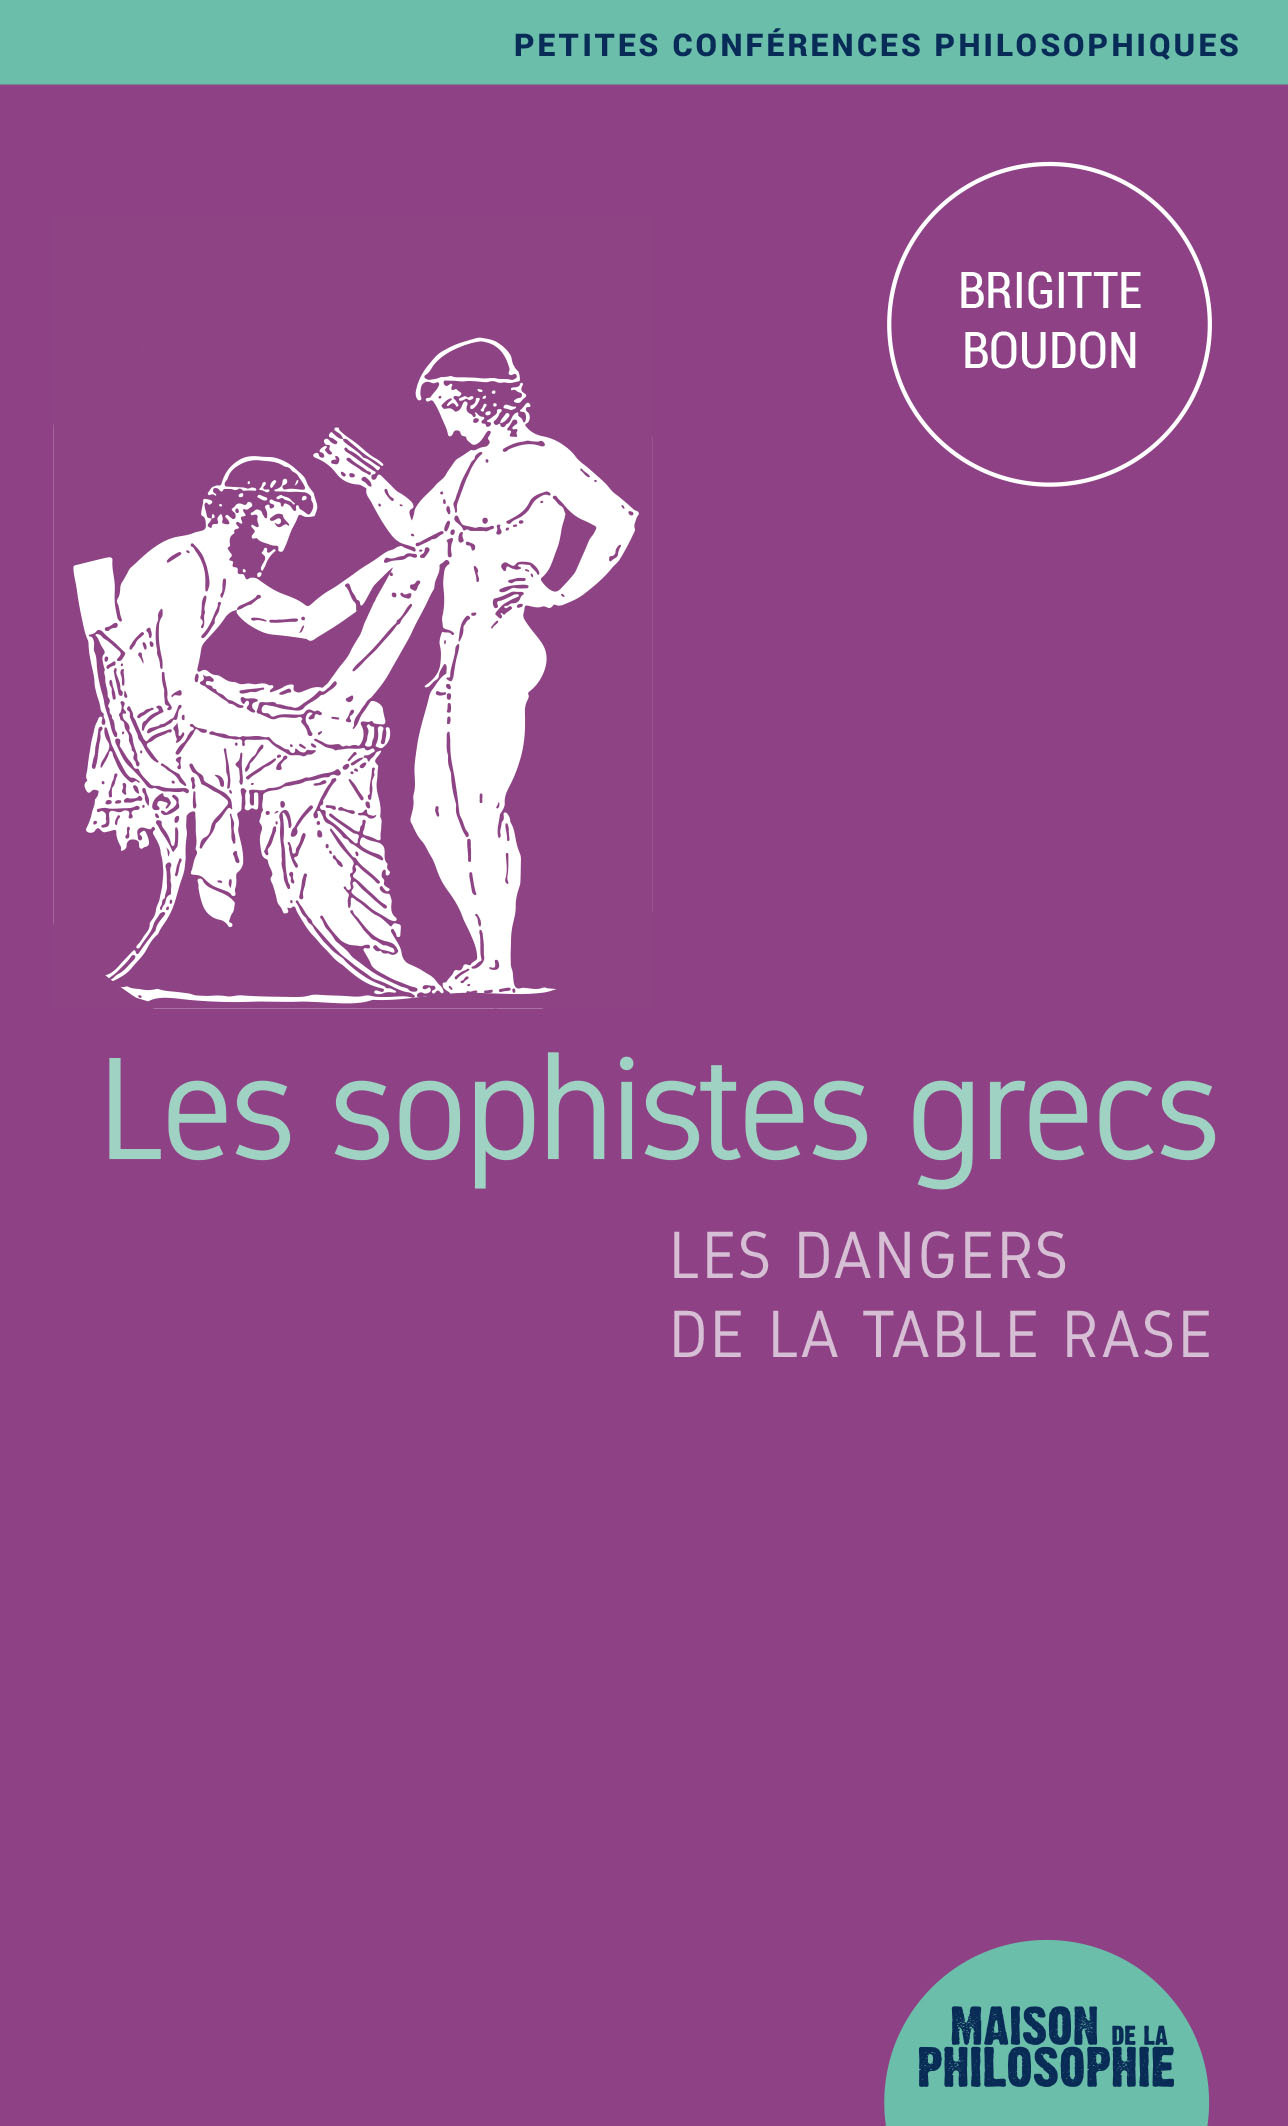 LES SOPHISTES GRECS, LES DANGERS DE LA TABLE RASE